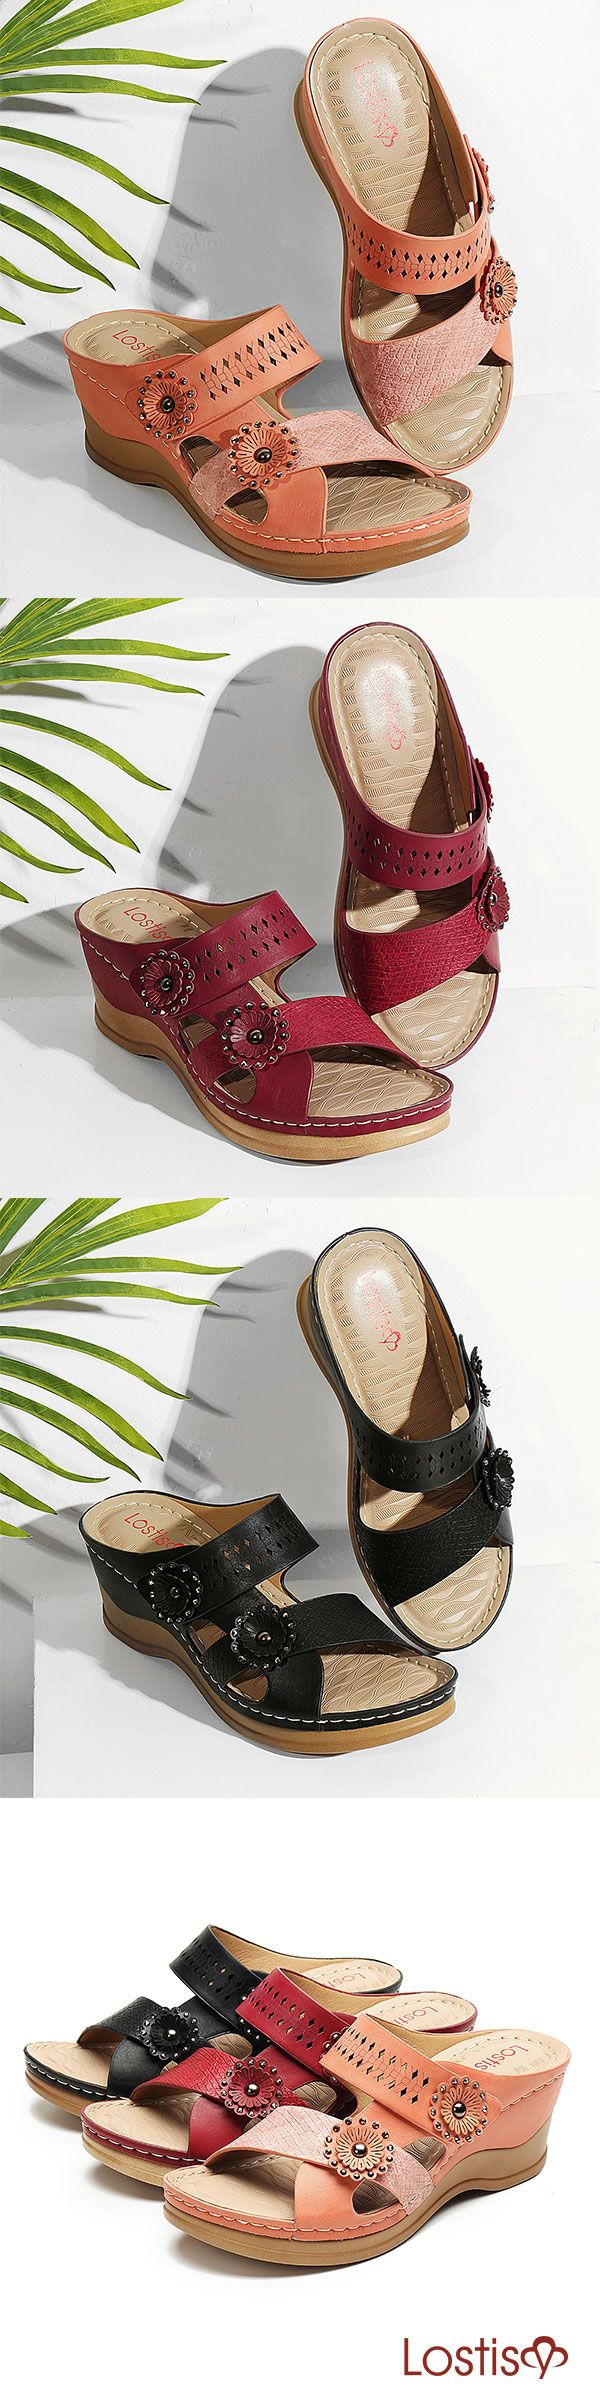 Wanna Try Shoes Like Walking On Clouds New Sandals Superb